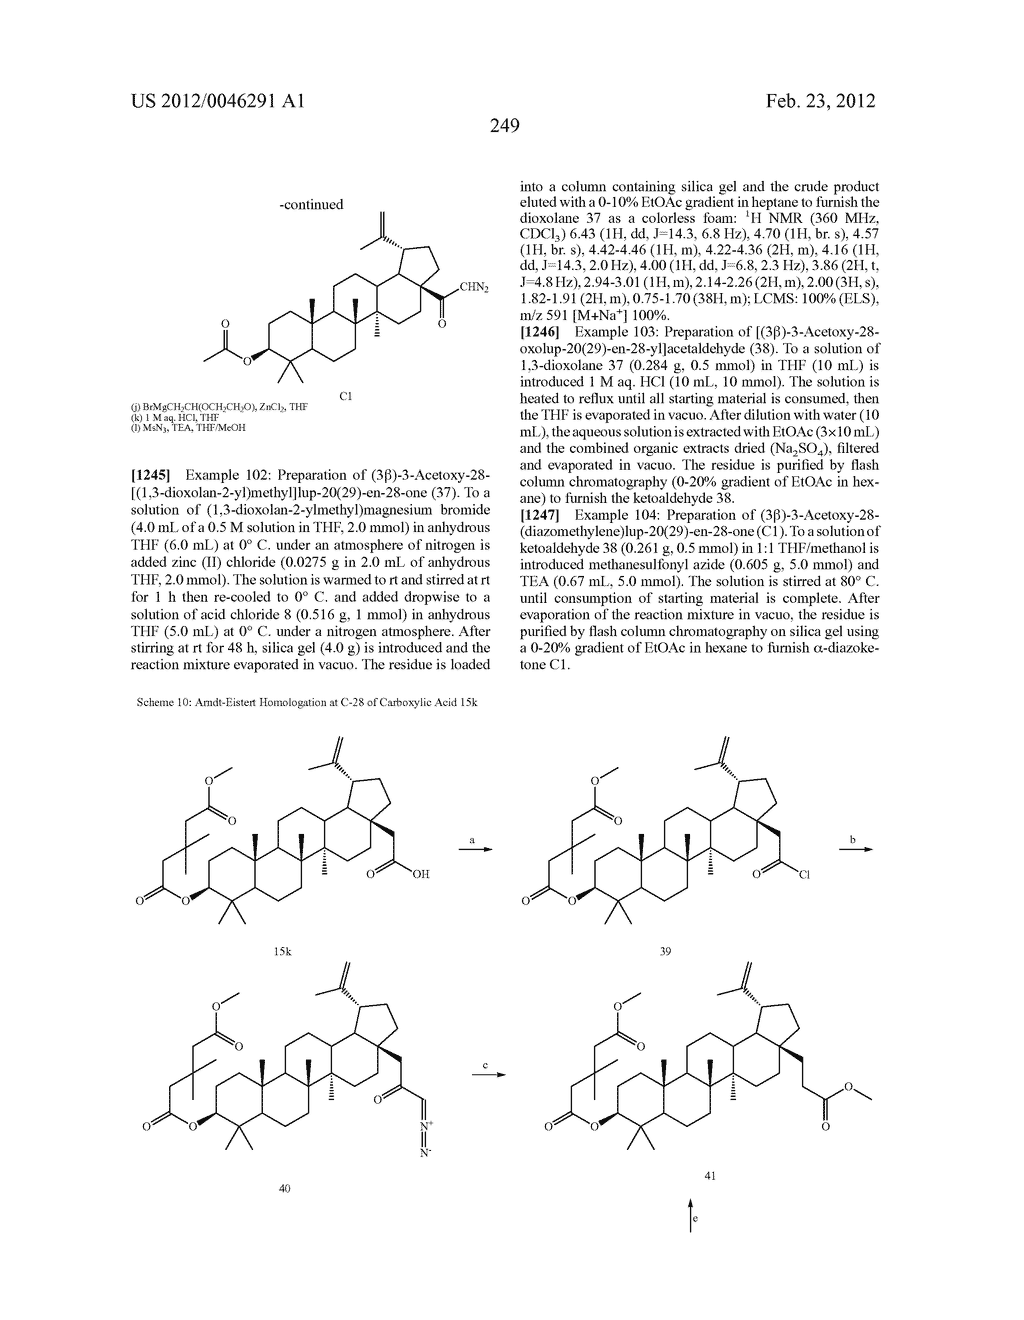 Extended Triterpene Derivatives - diagram, schematic, and image 249